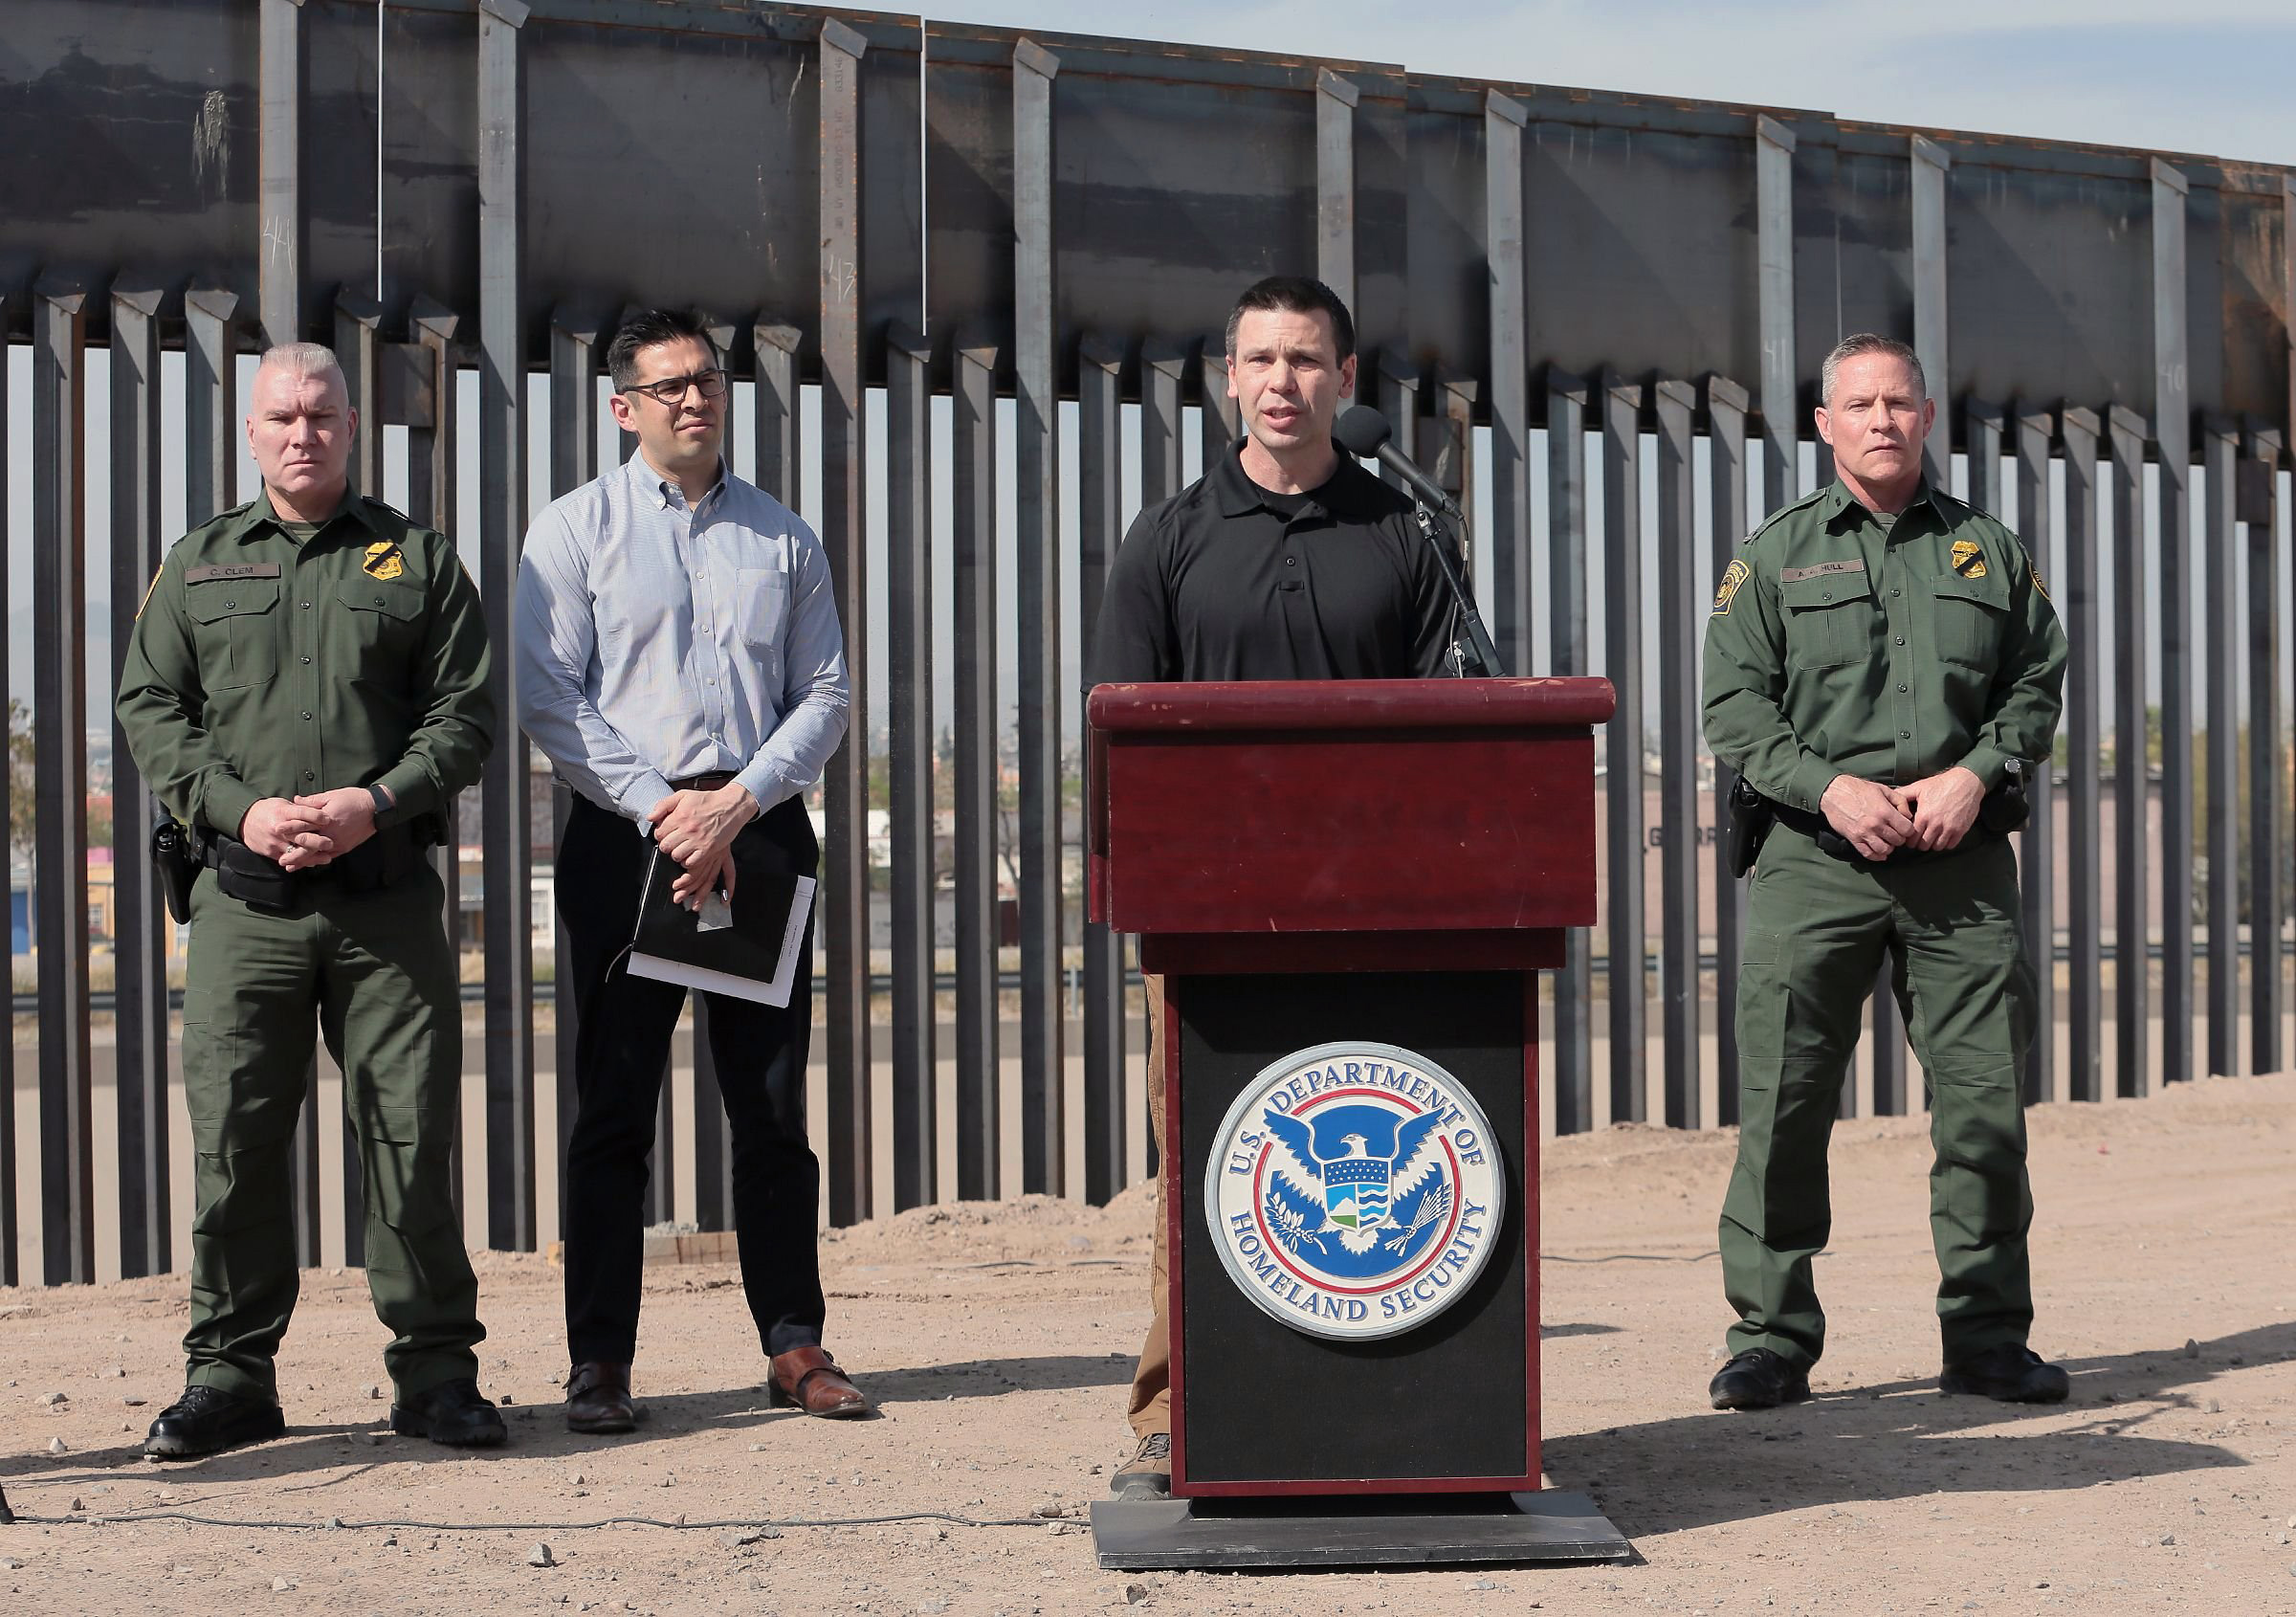 U.S. Customs and Border Protection Commissioner Kevin K. McAleenan, with the bollard border fence in the background, held a press conference in El Paso, Texas, on Mar. 27, 2019. McAleenan said the border has hit its  breaking point  due to flood of migrants in what he described as  a system that is broken and overwhelmed.